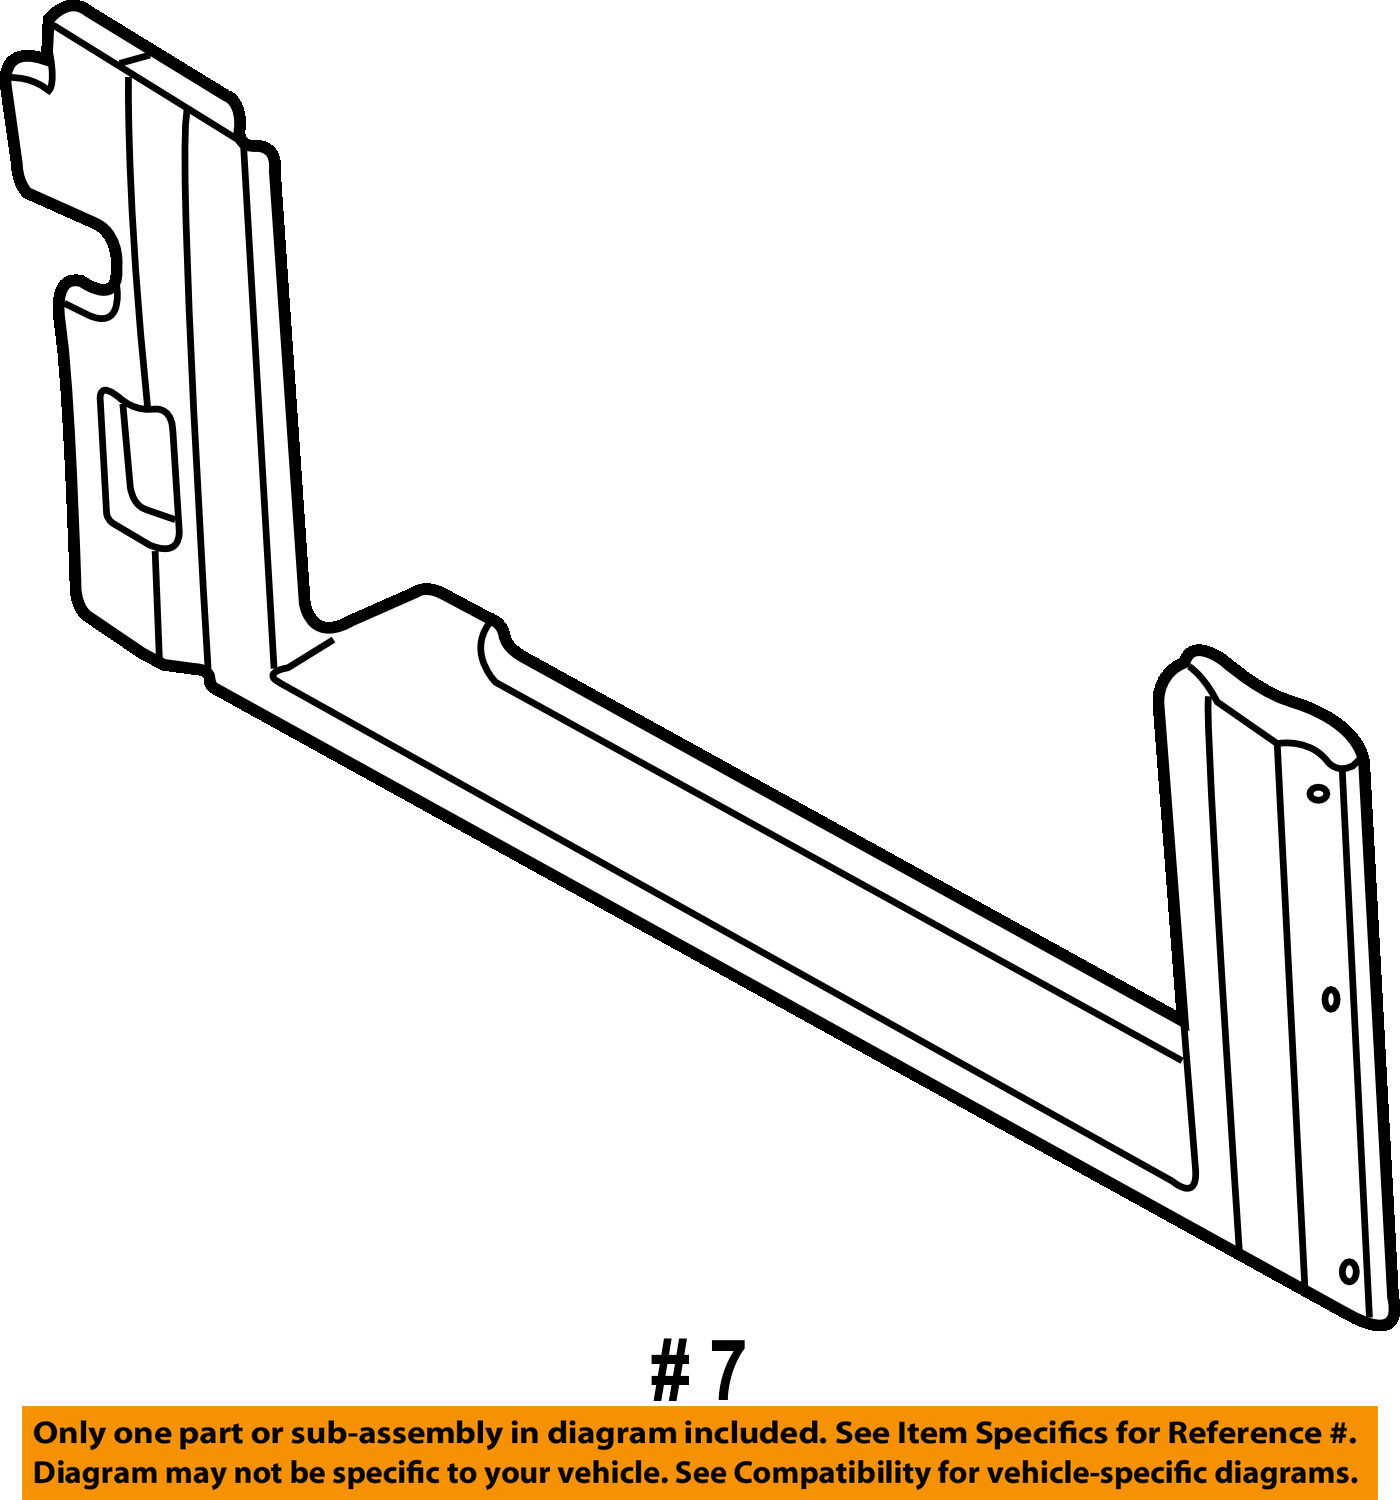 Gm Oem Radiator Support Air Baffle Duct Deflector 15749195 Ebay Escalator Schematic Norton Secured Powered By Verisign